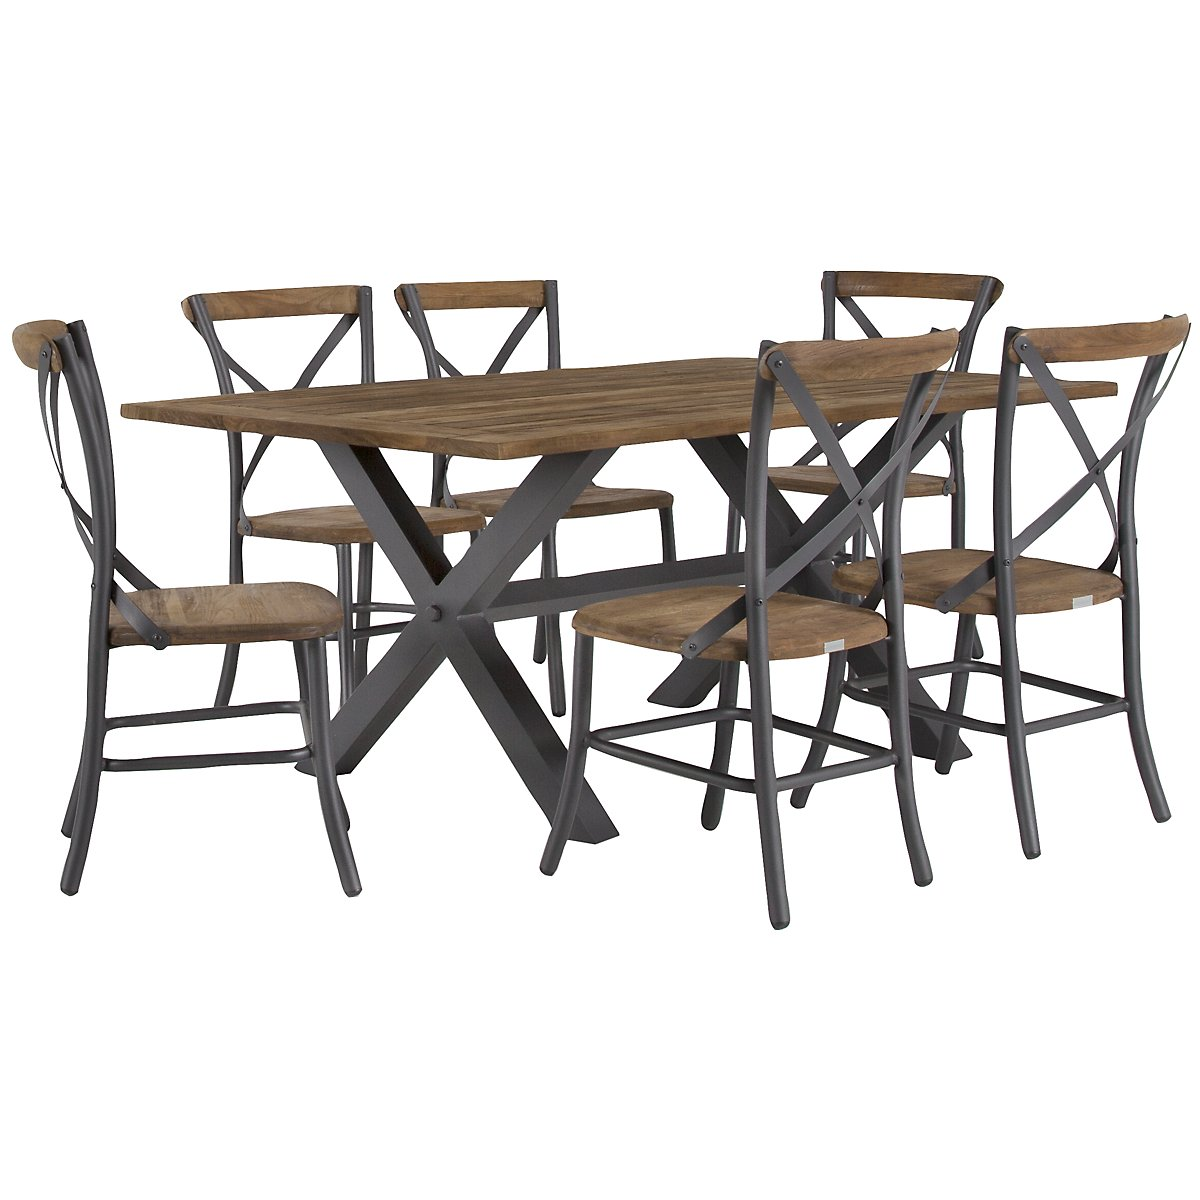 "Canyon Dark Tone 72"" Rectangular Table & 4 Chairs"